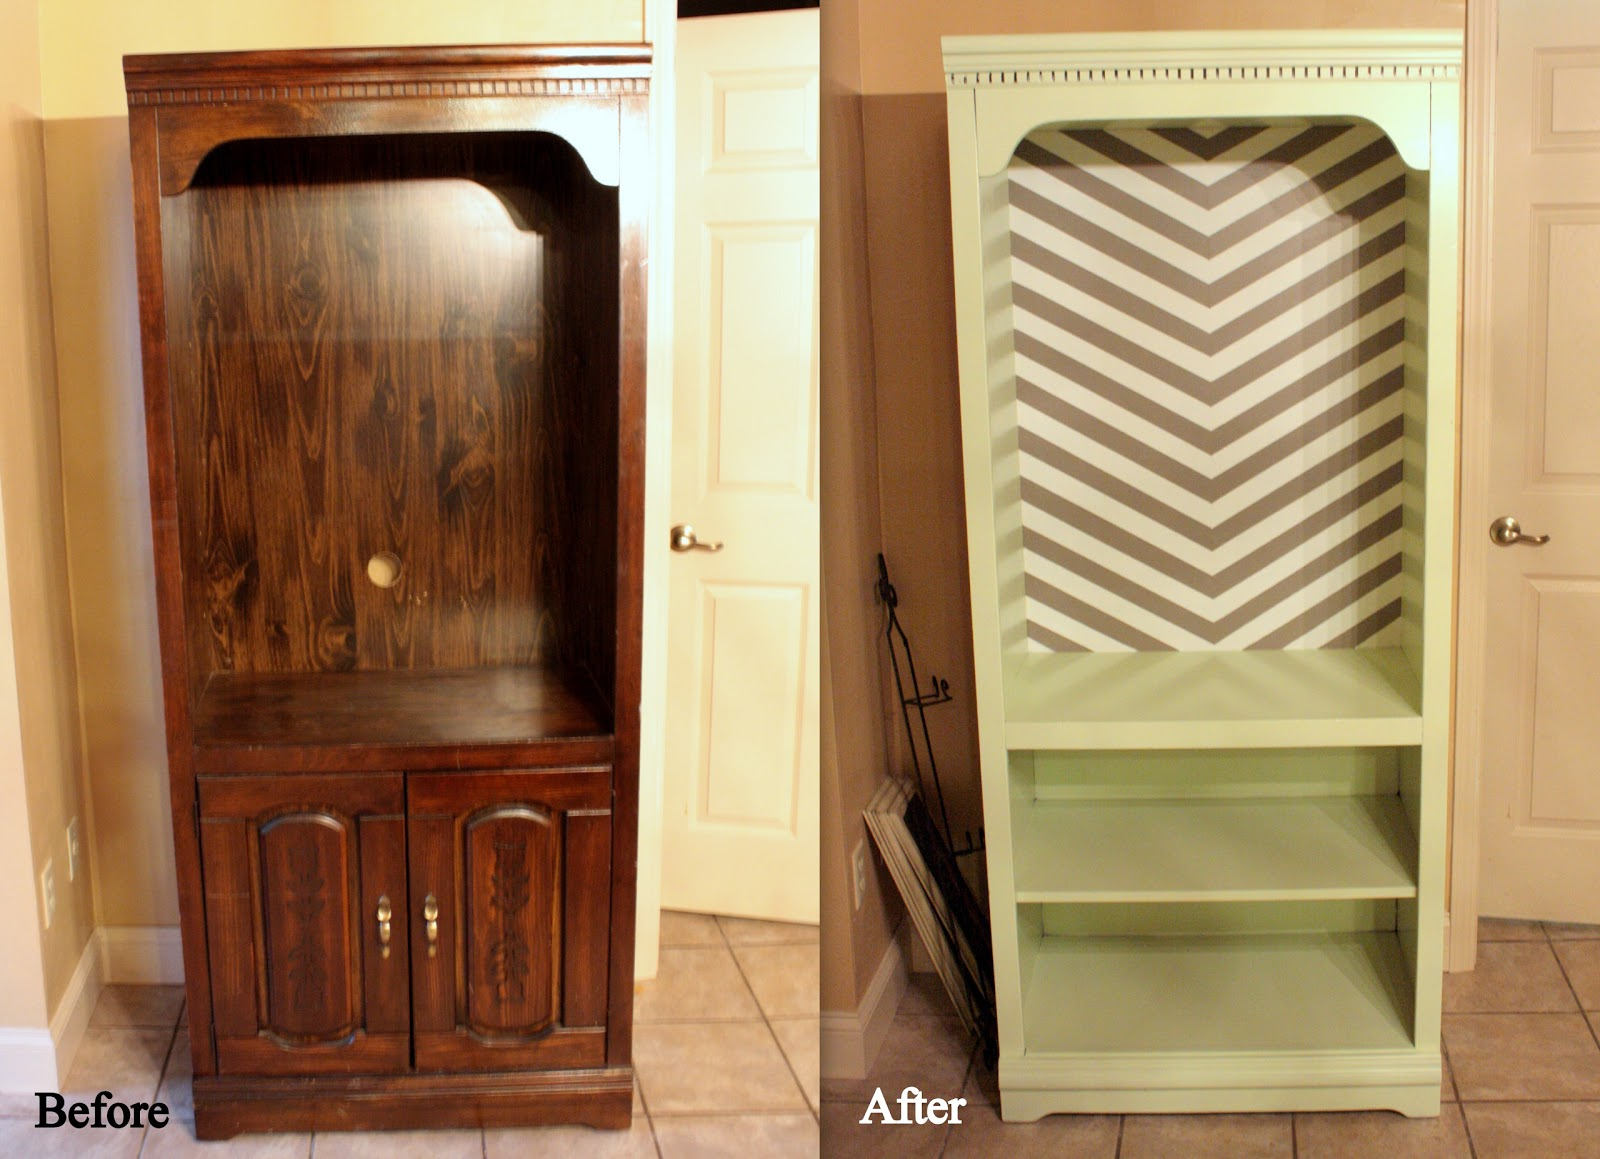 Pinterest and the Pauper!: How to Refinish Laminate Furniture. No